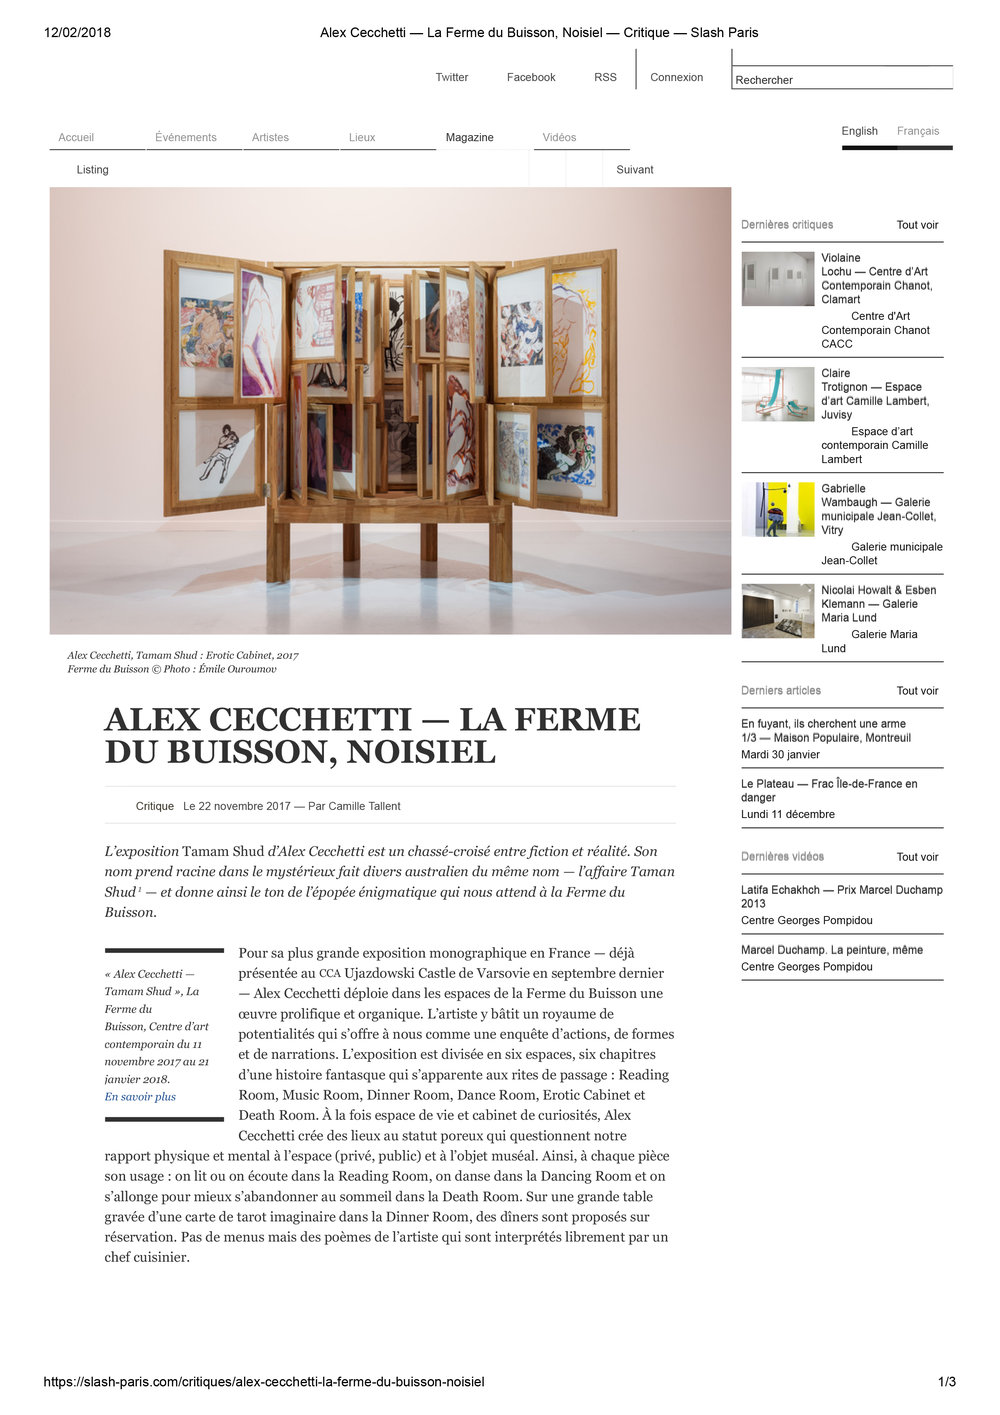 Alex Cecchetti — La Ferme du Buisson, Noisiel — Critique — Slash Paris-1.jpg